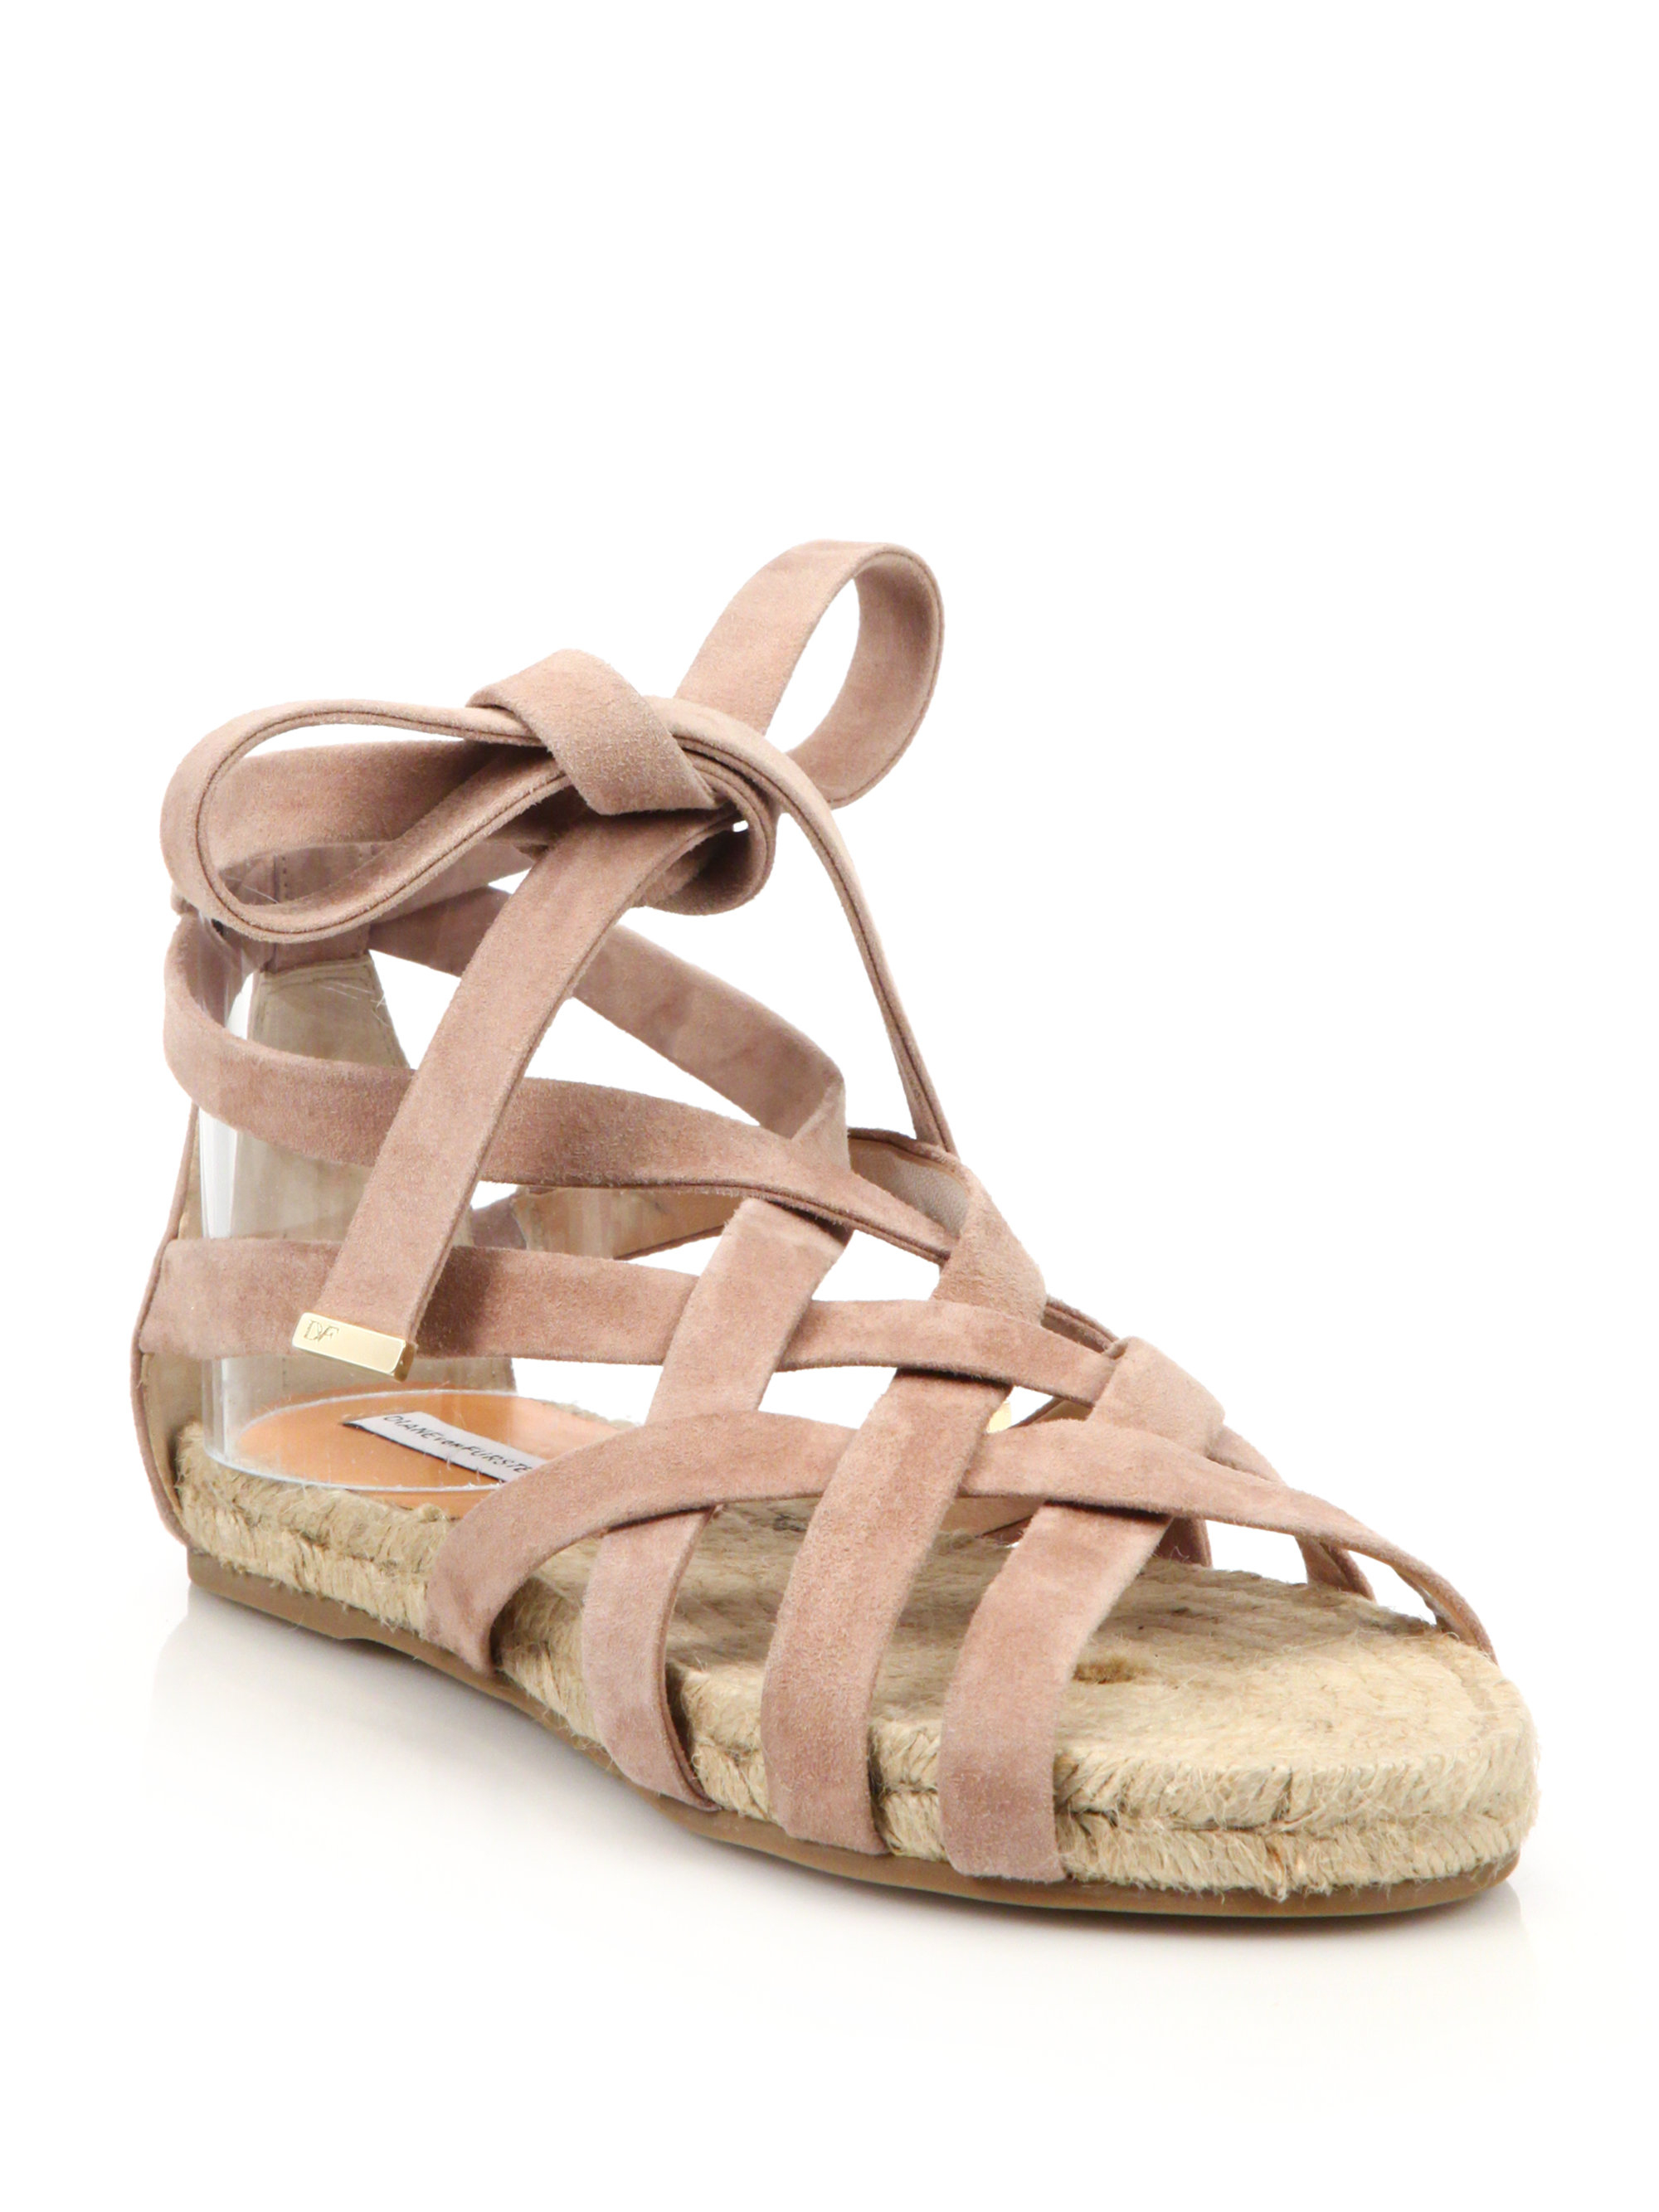 Diane von Furstenberg Metallic Lace-Up Flats with paypal cheap price free shipping pre order 2014 new for sale CbN4d